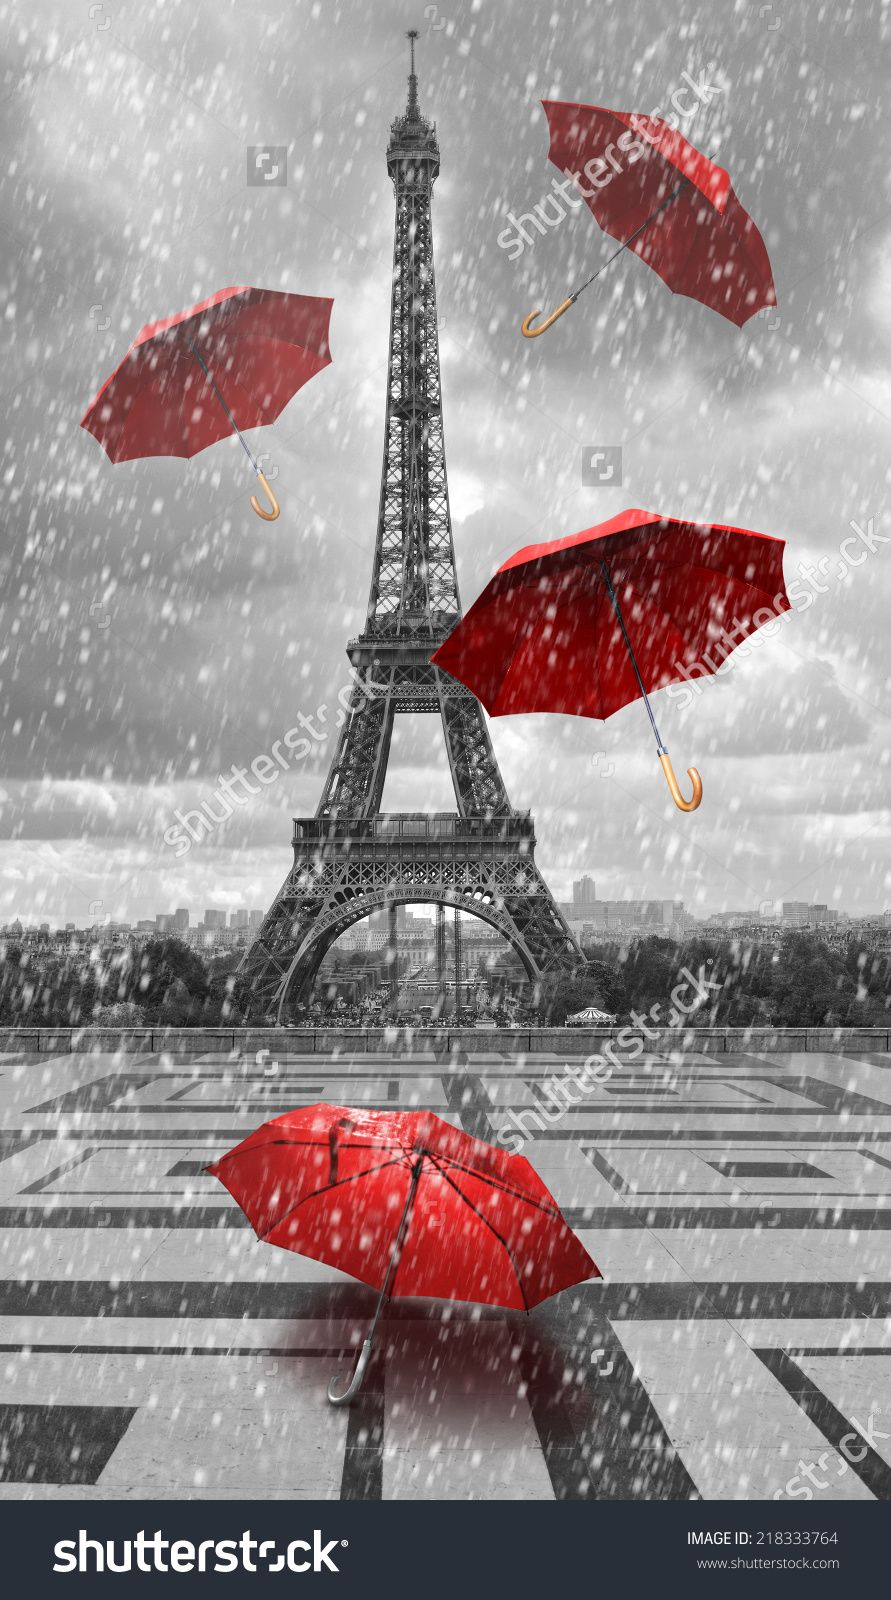 eiffel tower with flying umbrellas black and white with red element eleven eleven in 2019. Black Bedroom Furniture Sets. Home Design Ideas